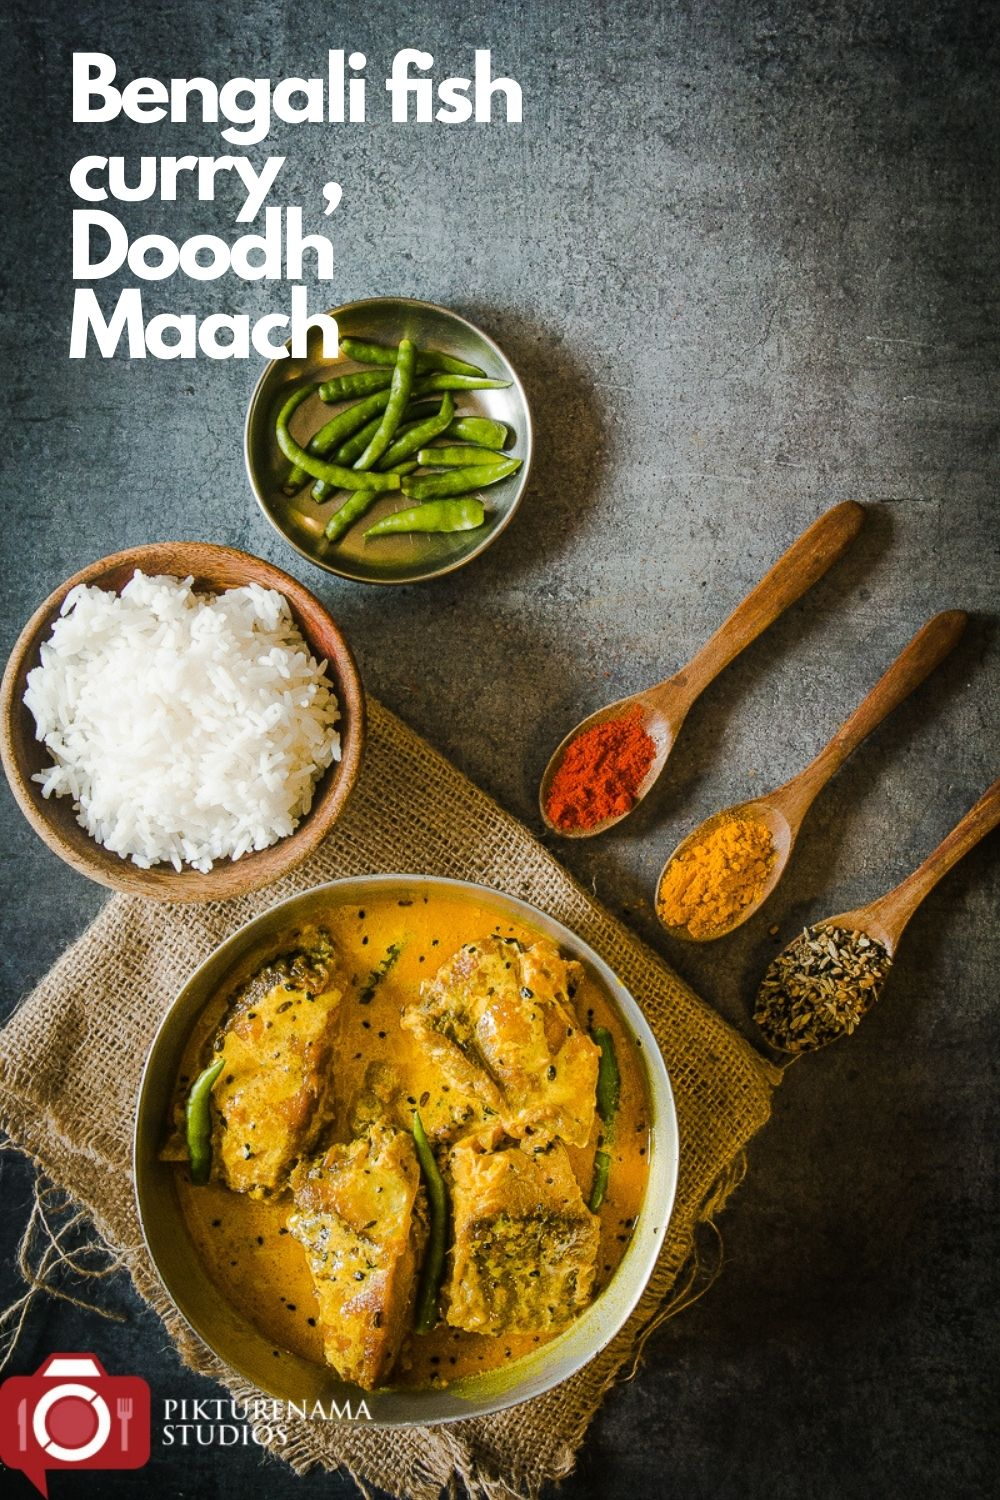 Doodh Maach for pinterest